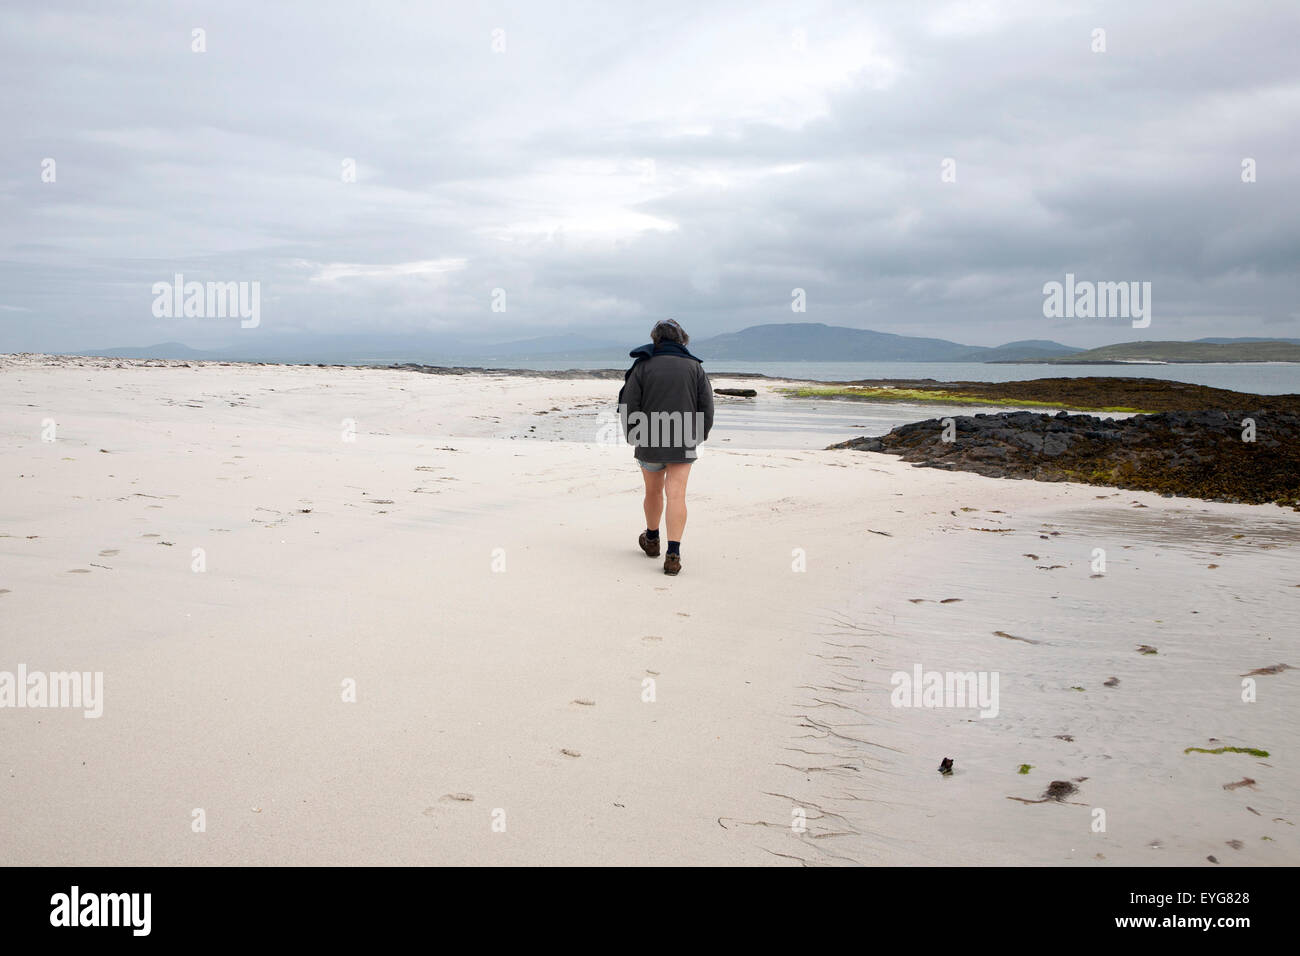 Woman walking overcast sky sandy beach Eoligarry, Barra, Outer Hebrides, Scotland, UK - Stock Image